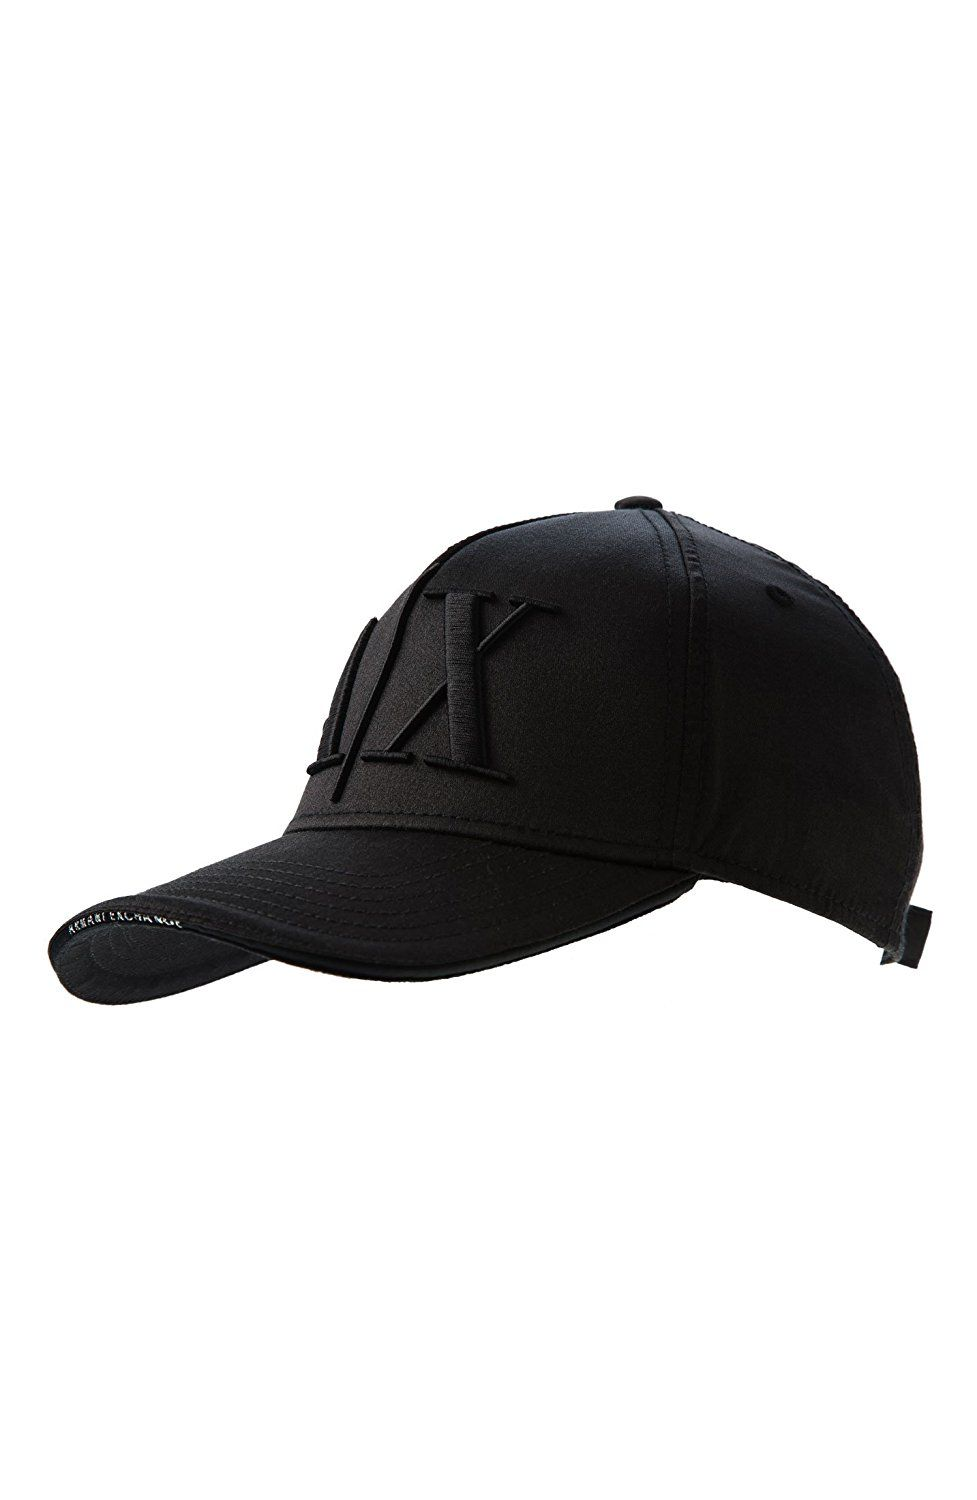 40b76500152 Armani Exchange Mens Sateen Logo Baseball Hat